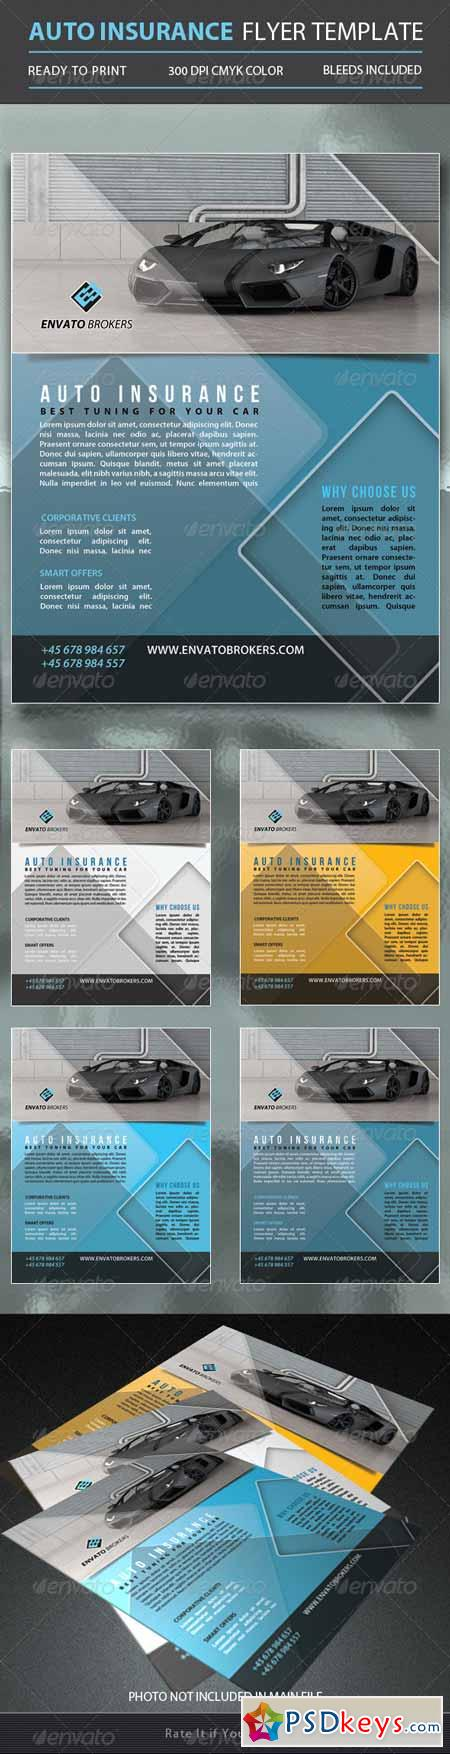 Auto Insurance Flyer Template 5350762